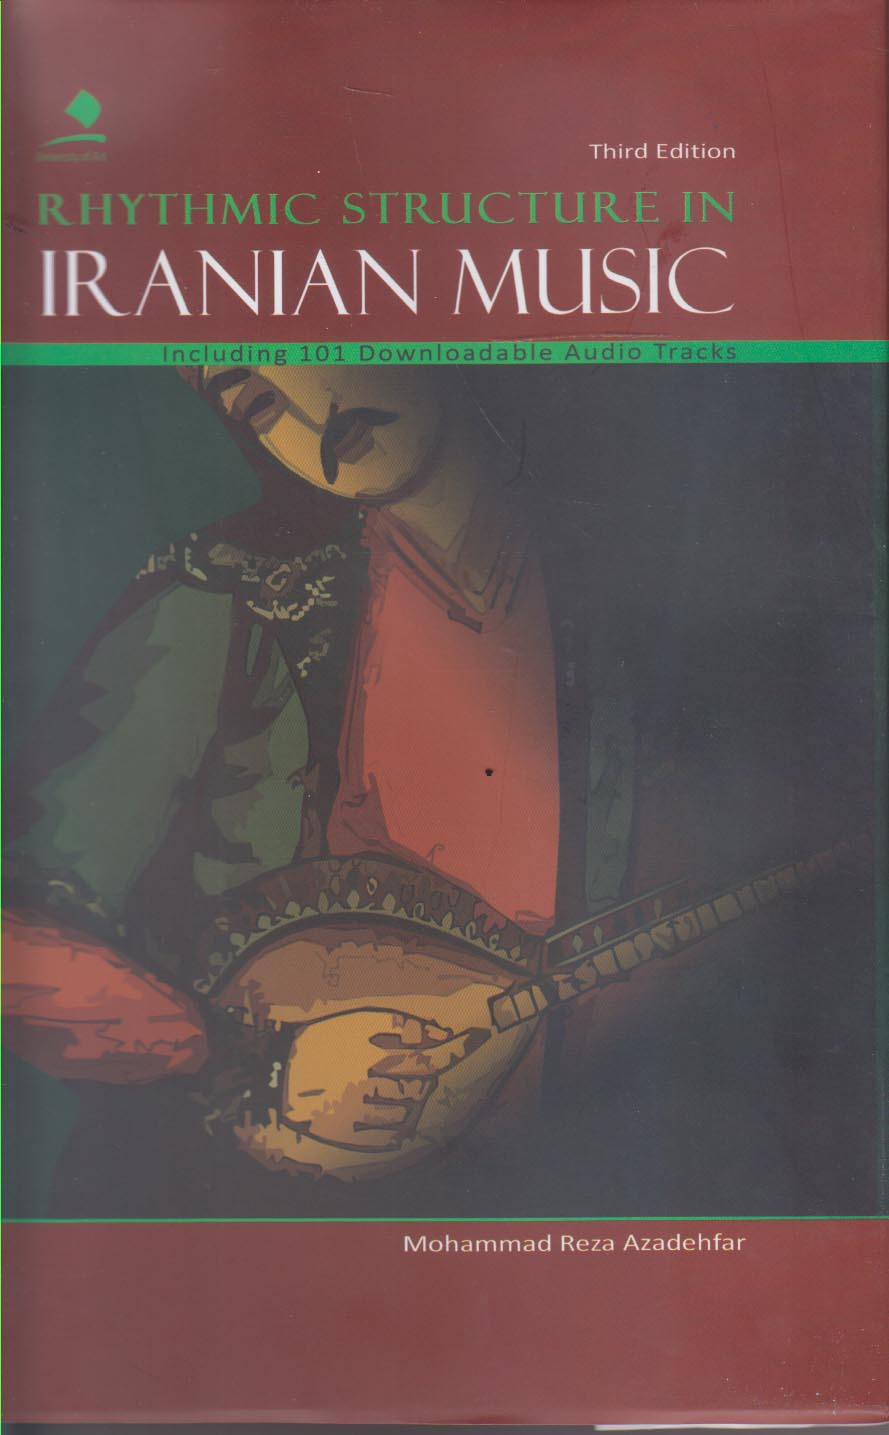 ‏‫‭ Rhythmic structurein Iranian music